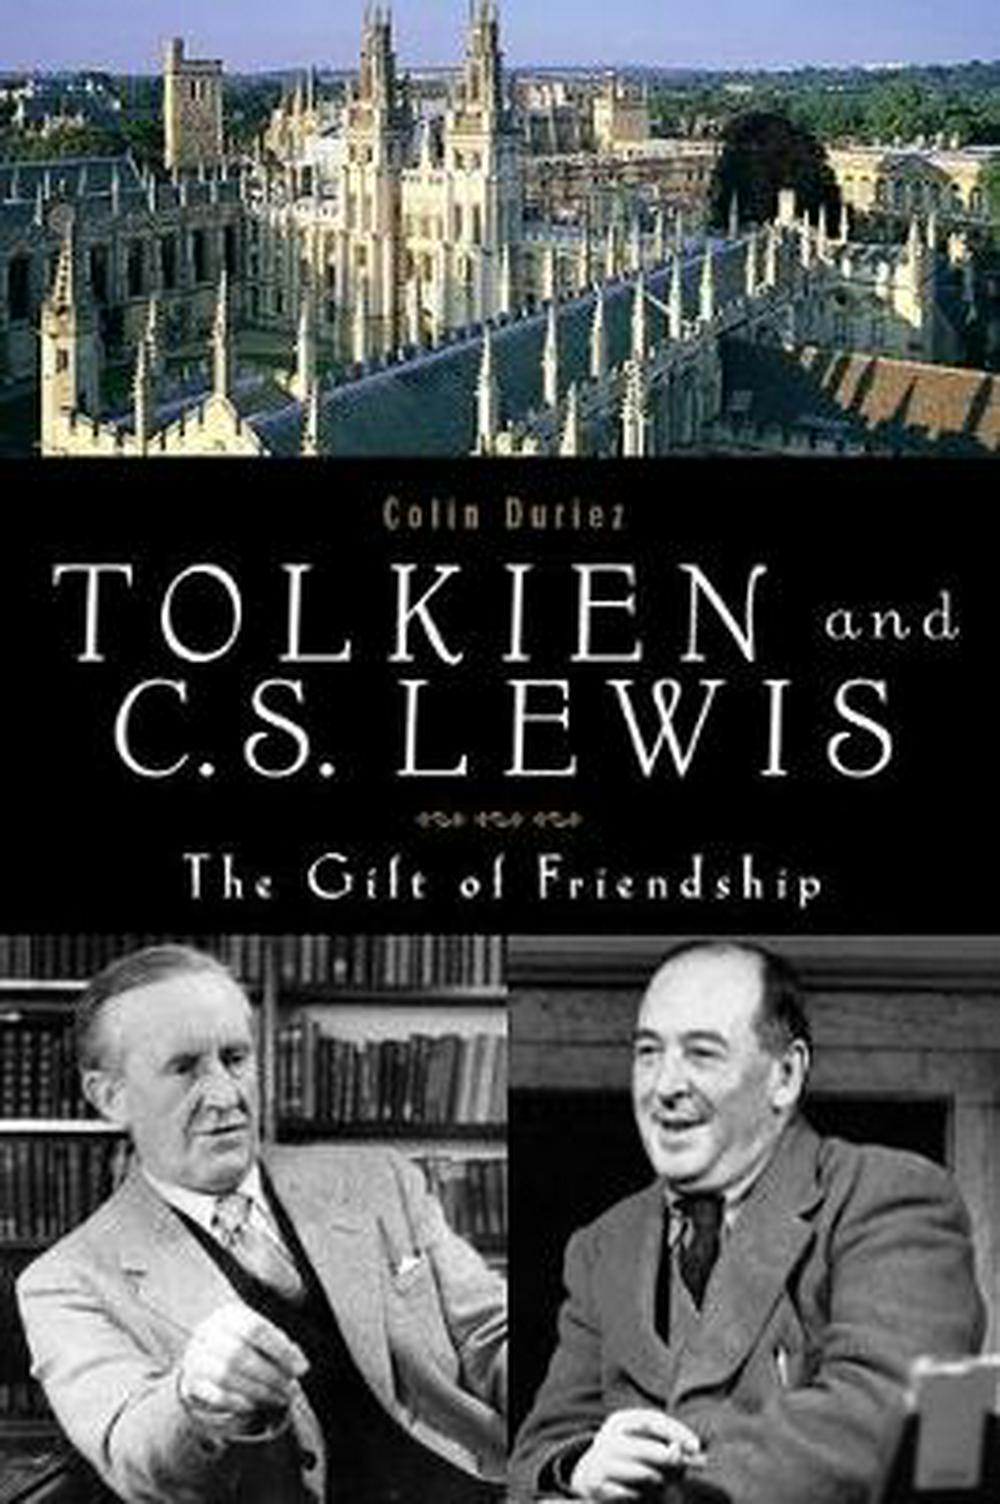 Tolkien and the C. S. Lewis